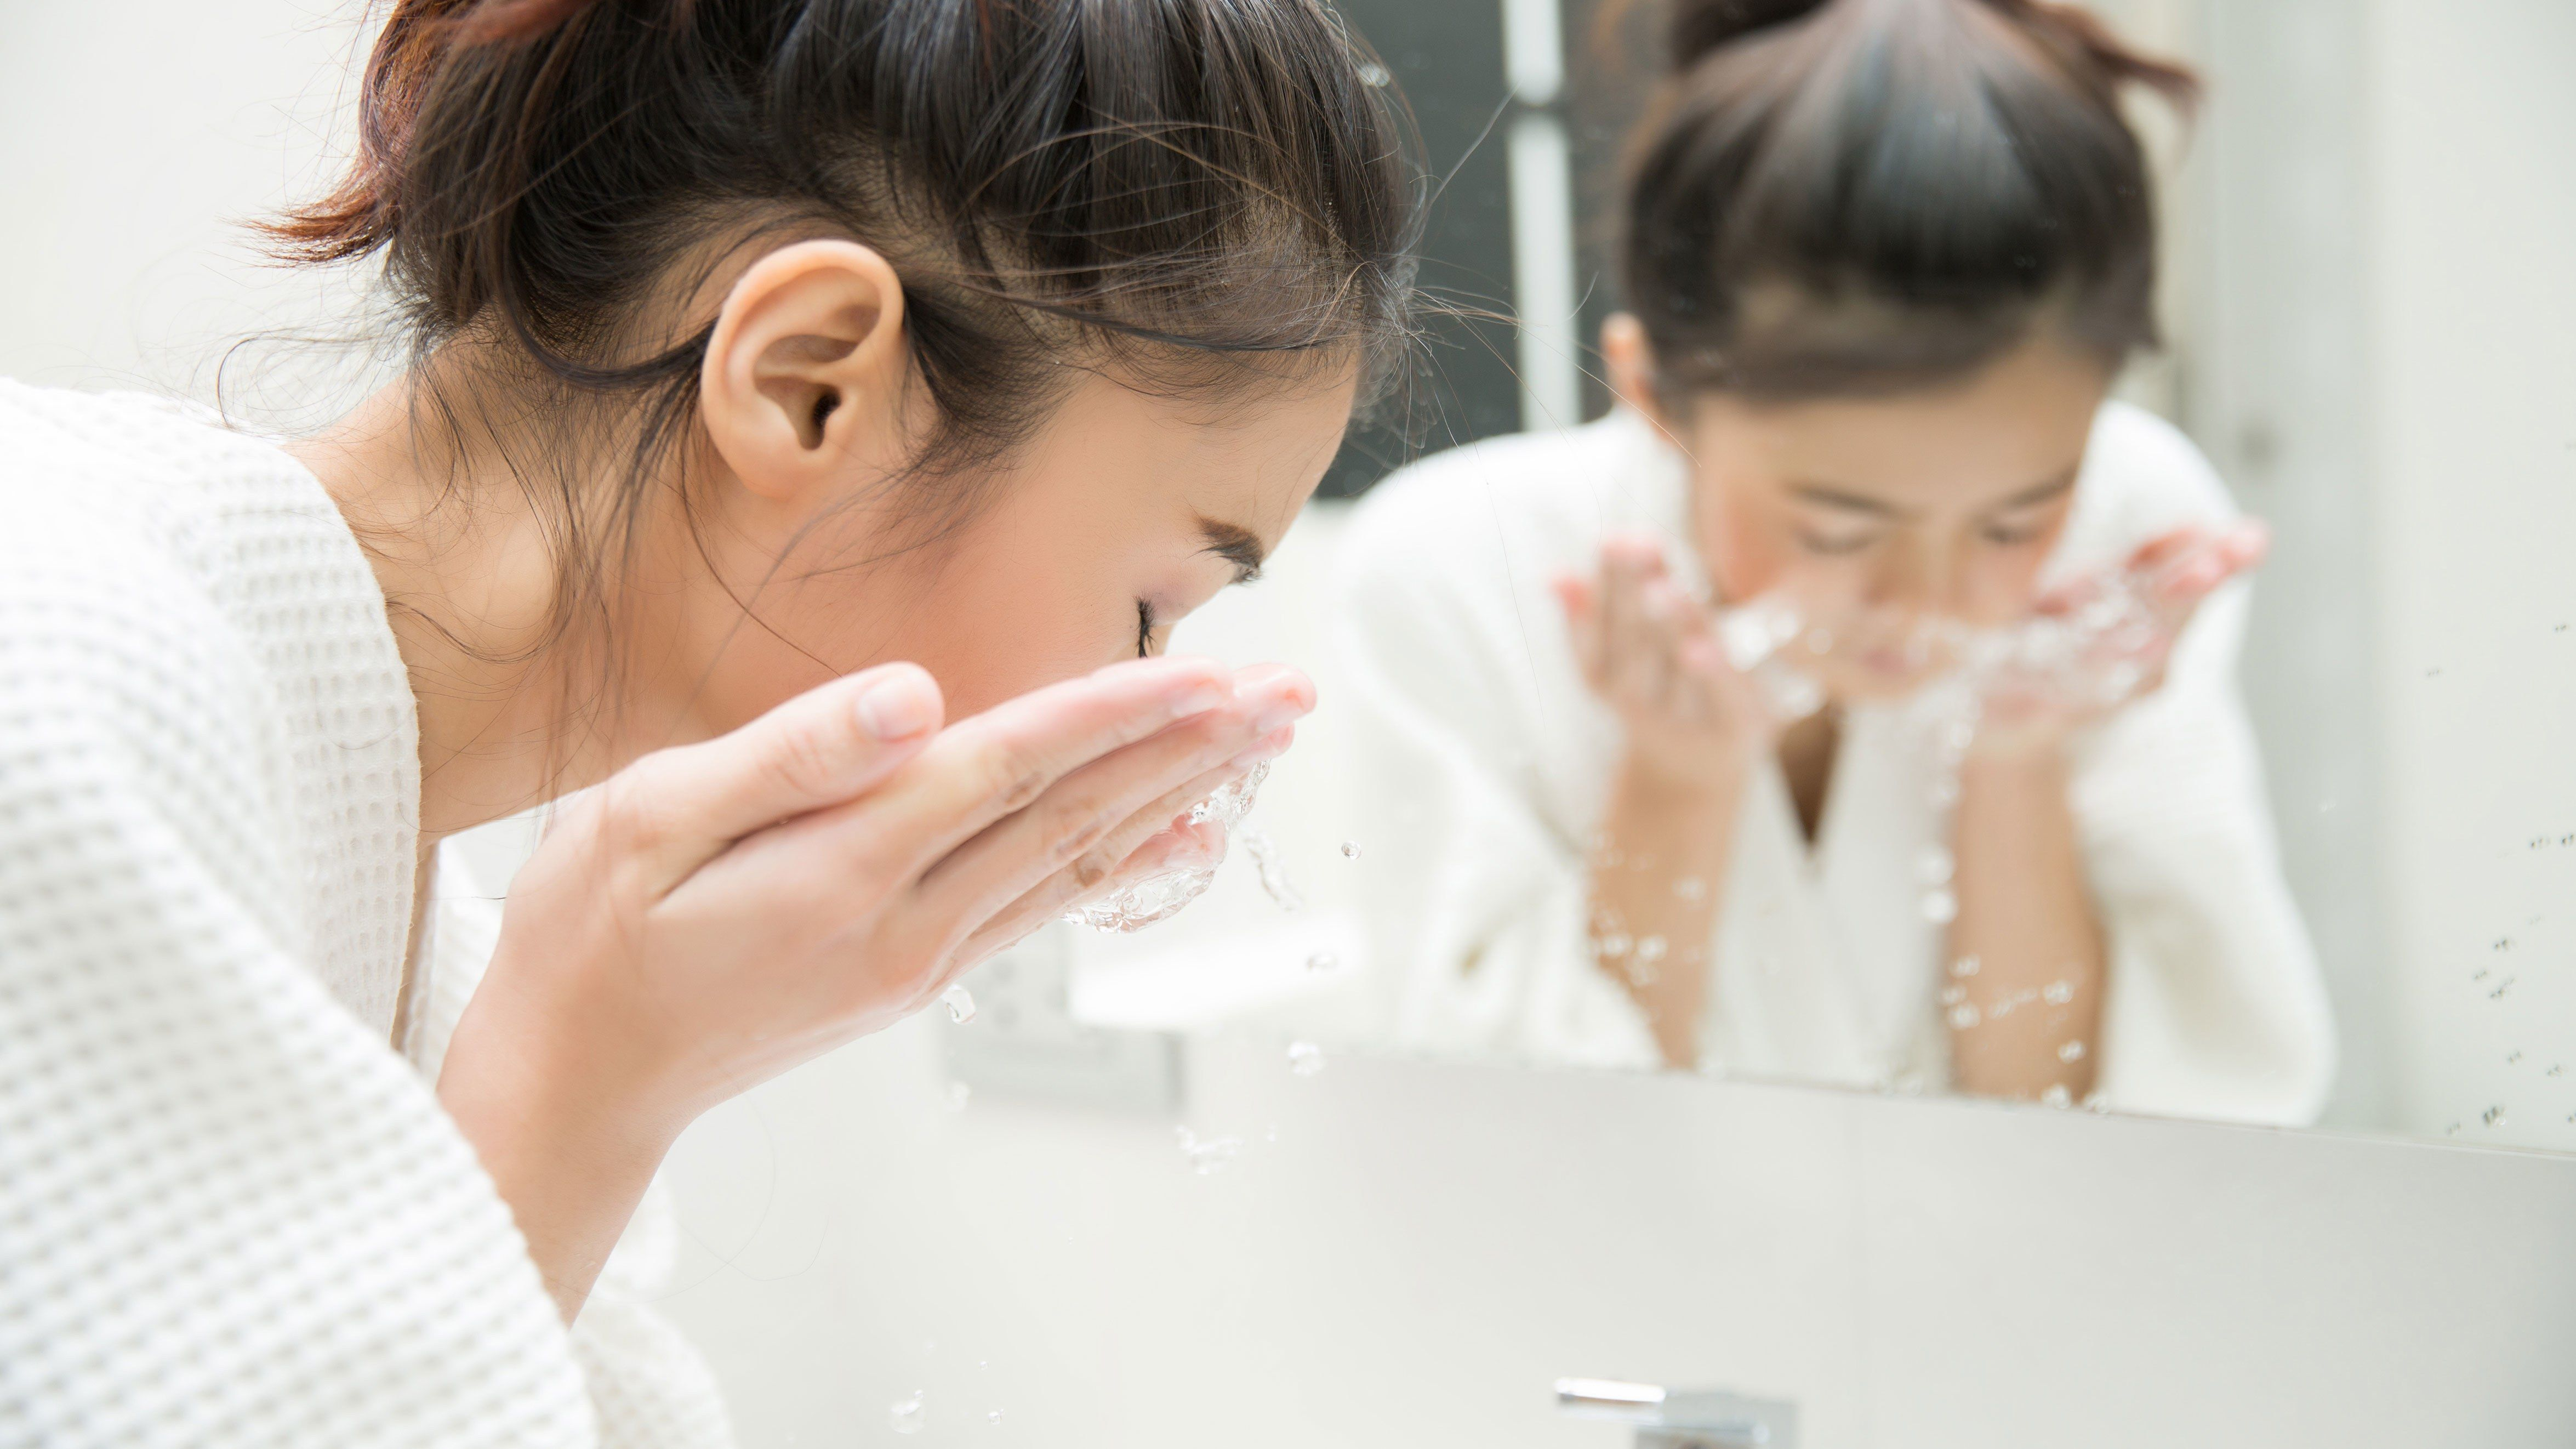 Image result for washing face in mirror